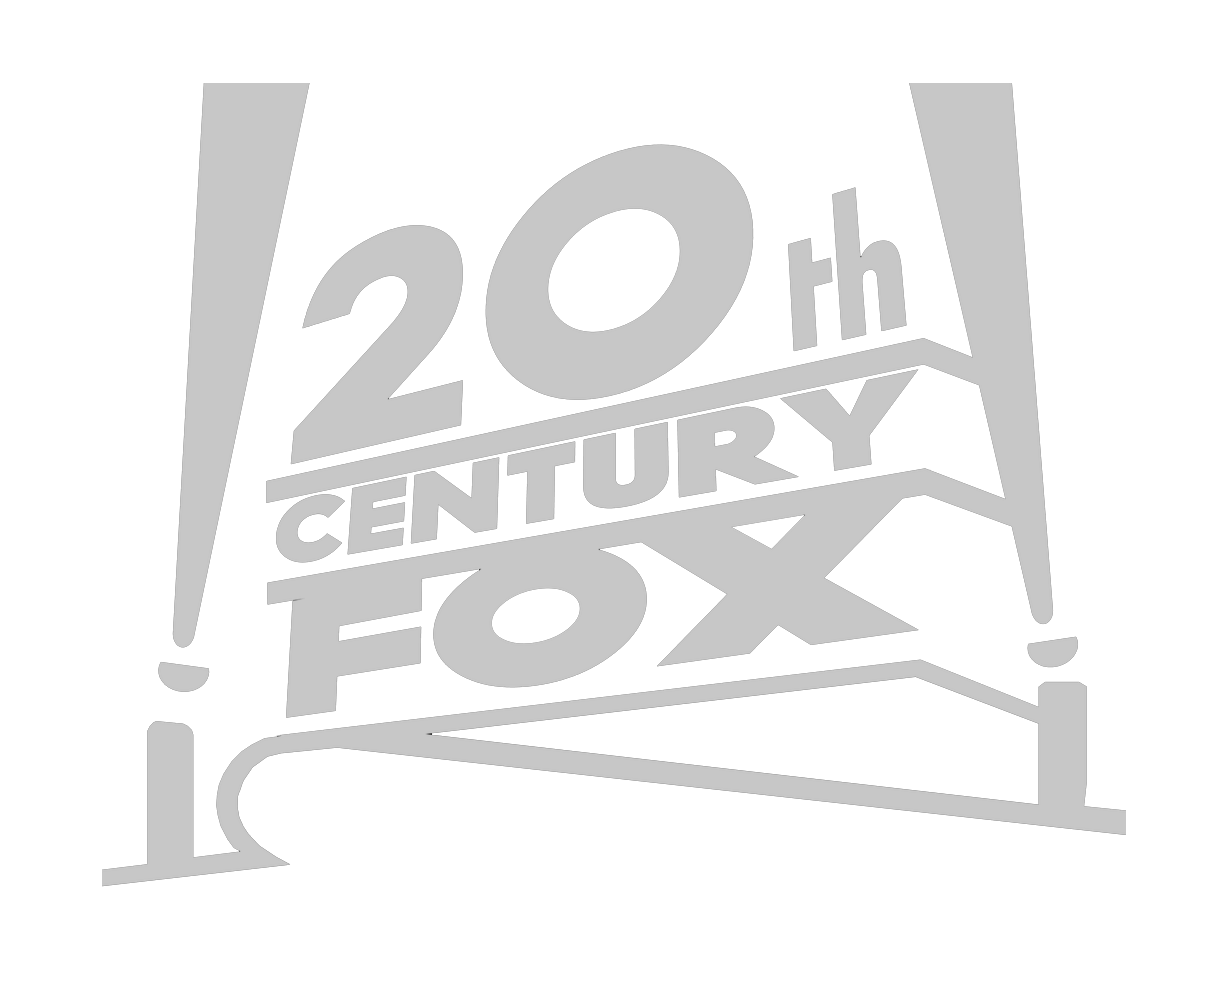 20th_century_fox_logo_print_by_supermariojustin4-da5seo3